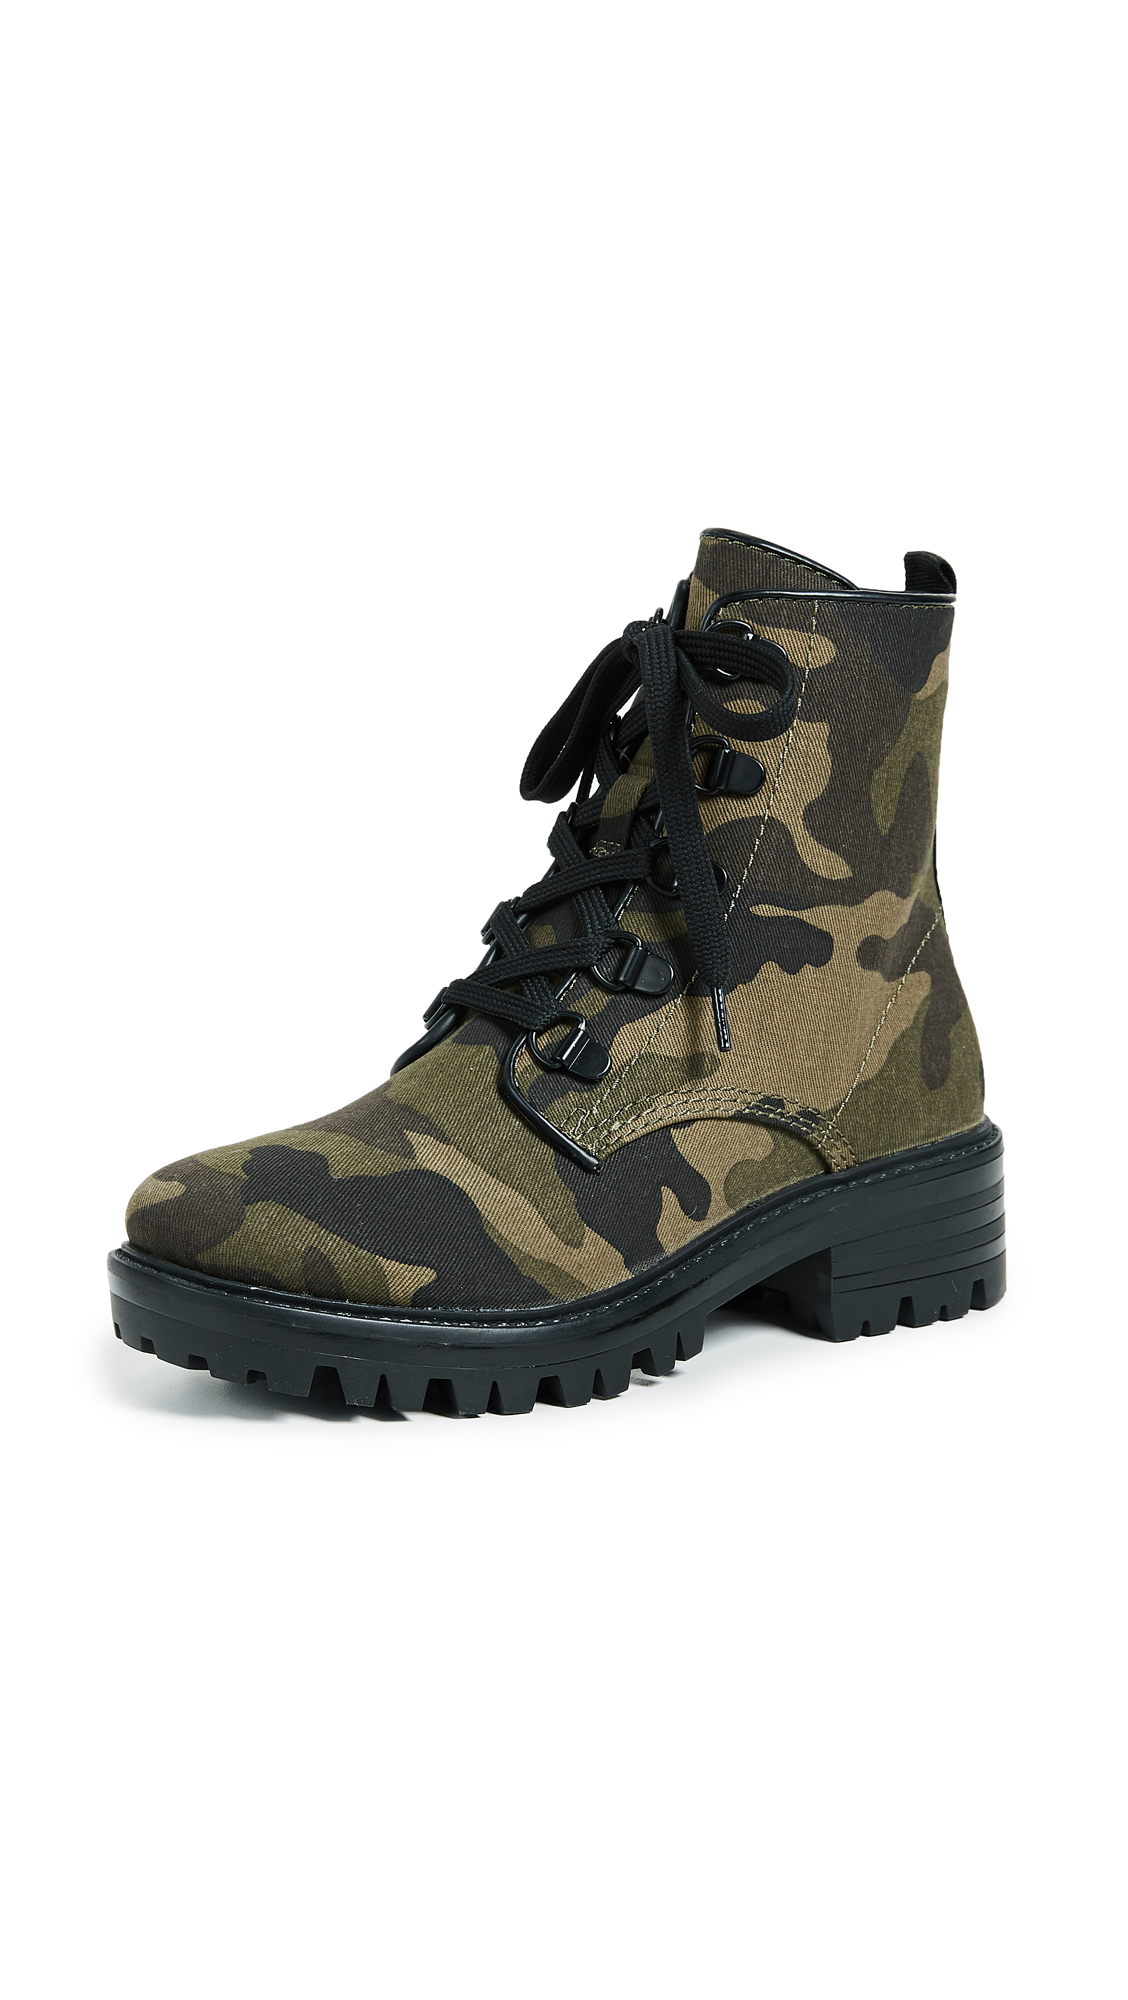 KENDALL + KYLIE Epic Combat Boots - Dark Green